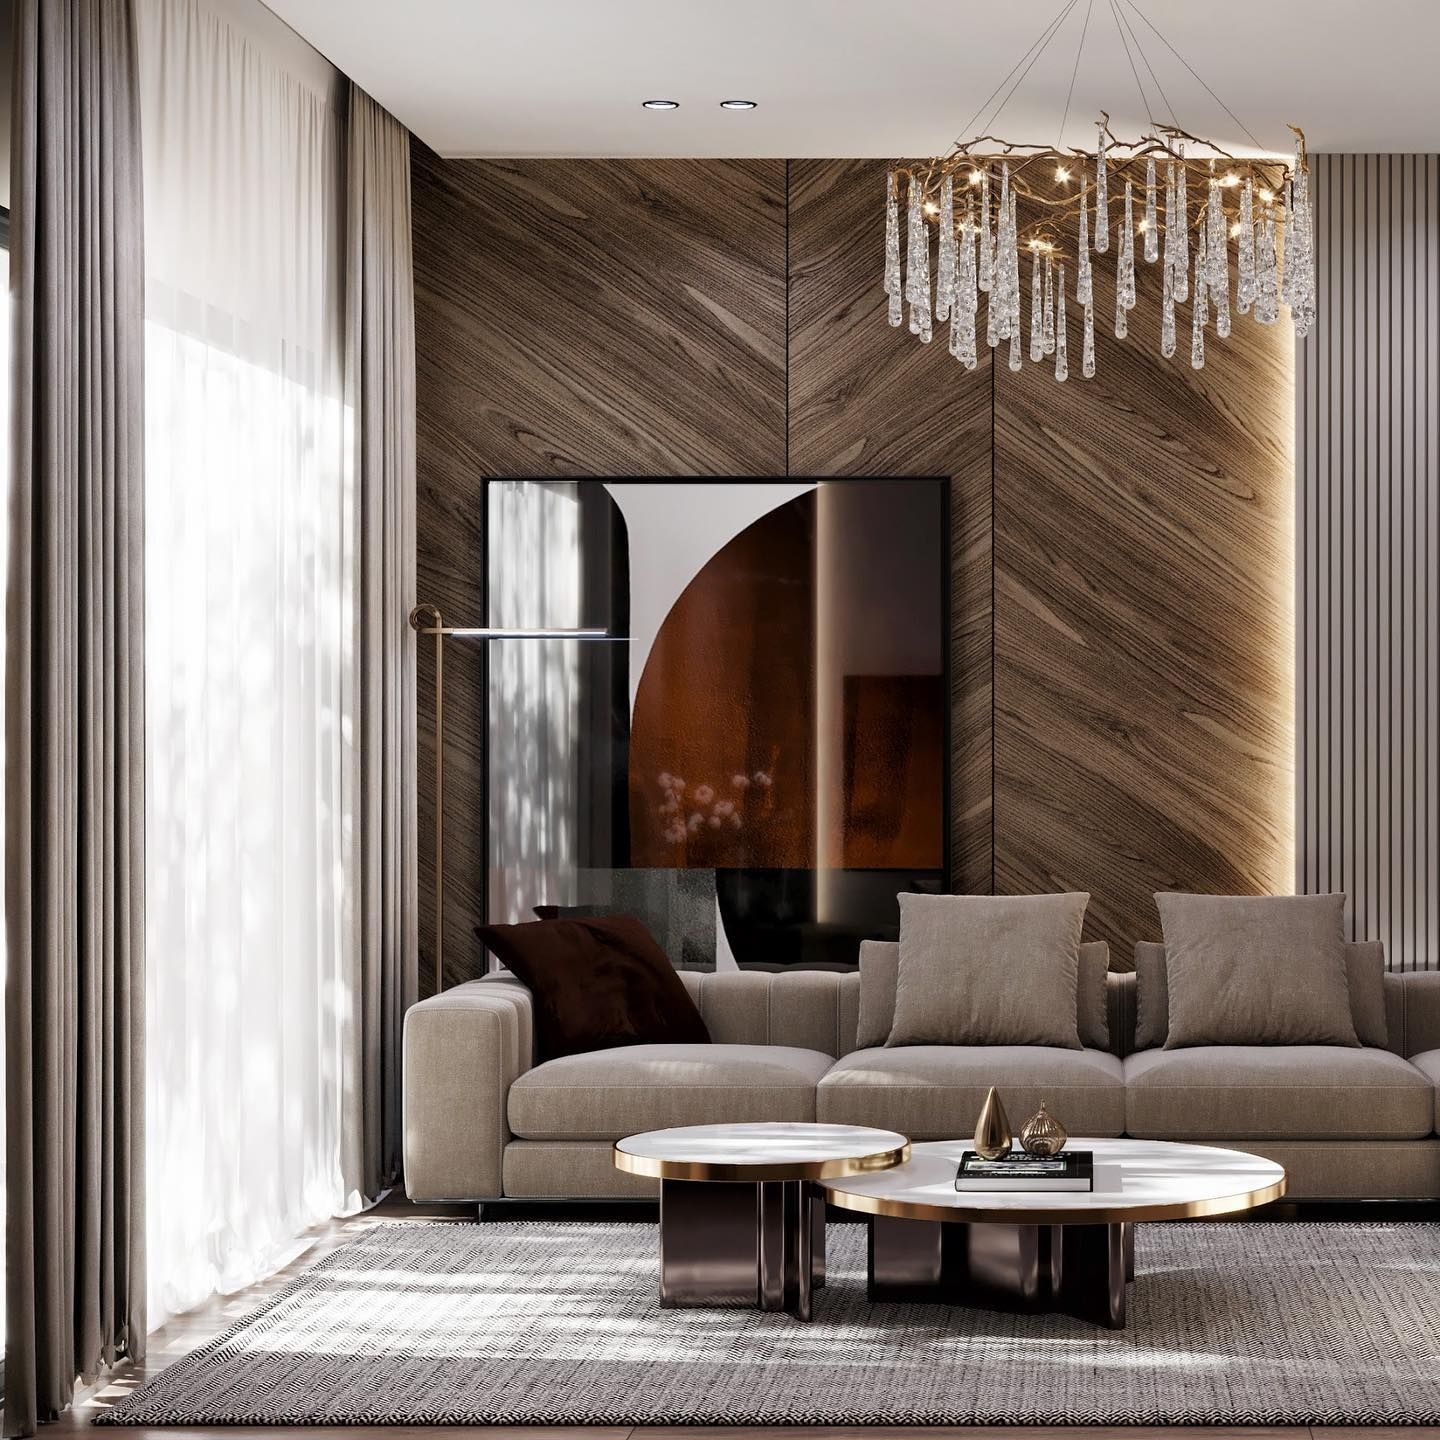 Great Design Is Great Complexity Presented Via Simplicity Bax Architecture Living Room Design Decor Contemporary Furniture Design Italian Furniture Brands